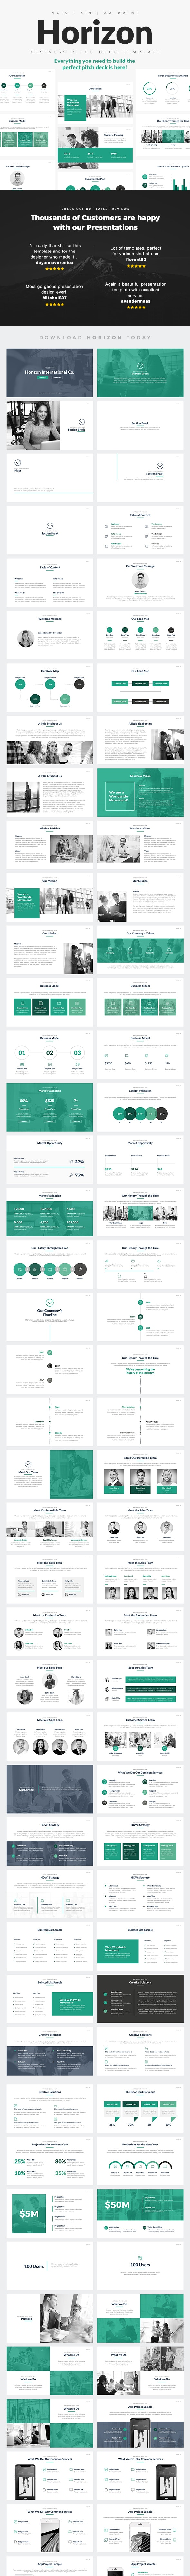 Horizon Business Pitch Deck PowerPoint Template - PowerPoint Templates Presentation Templates